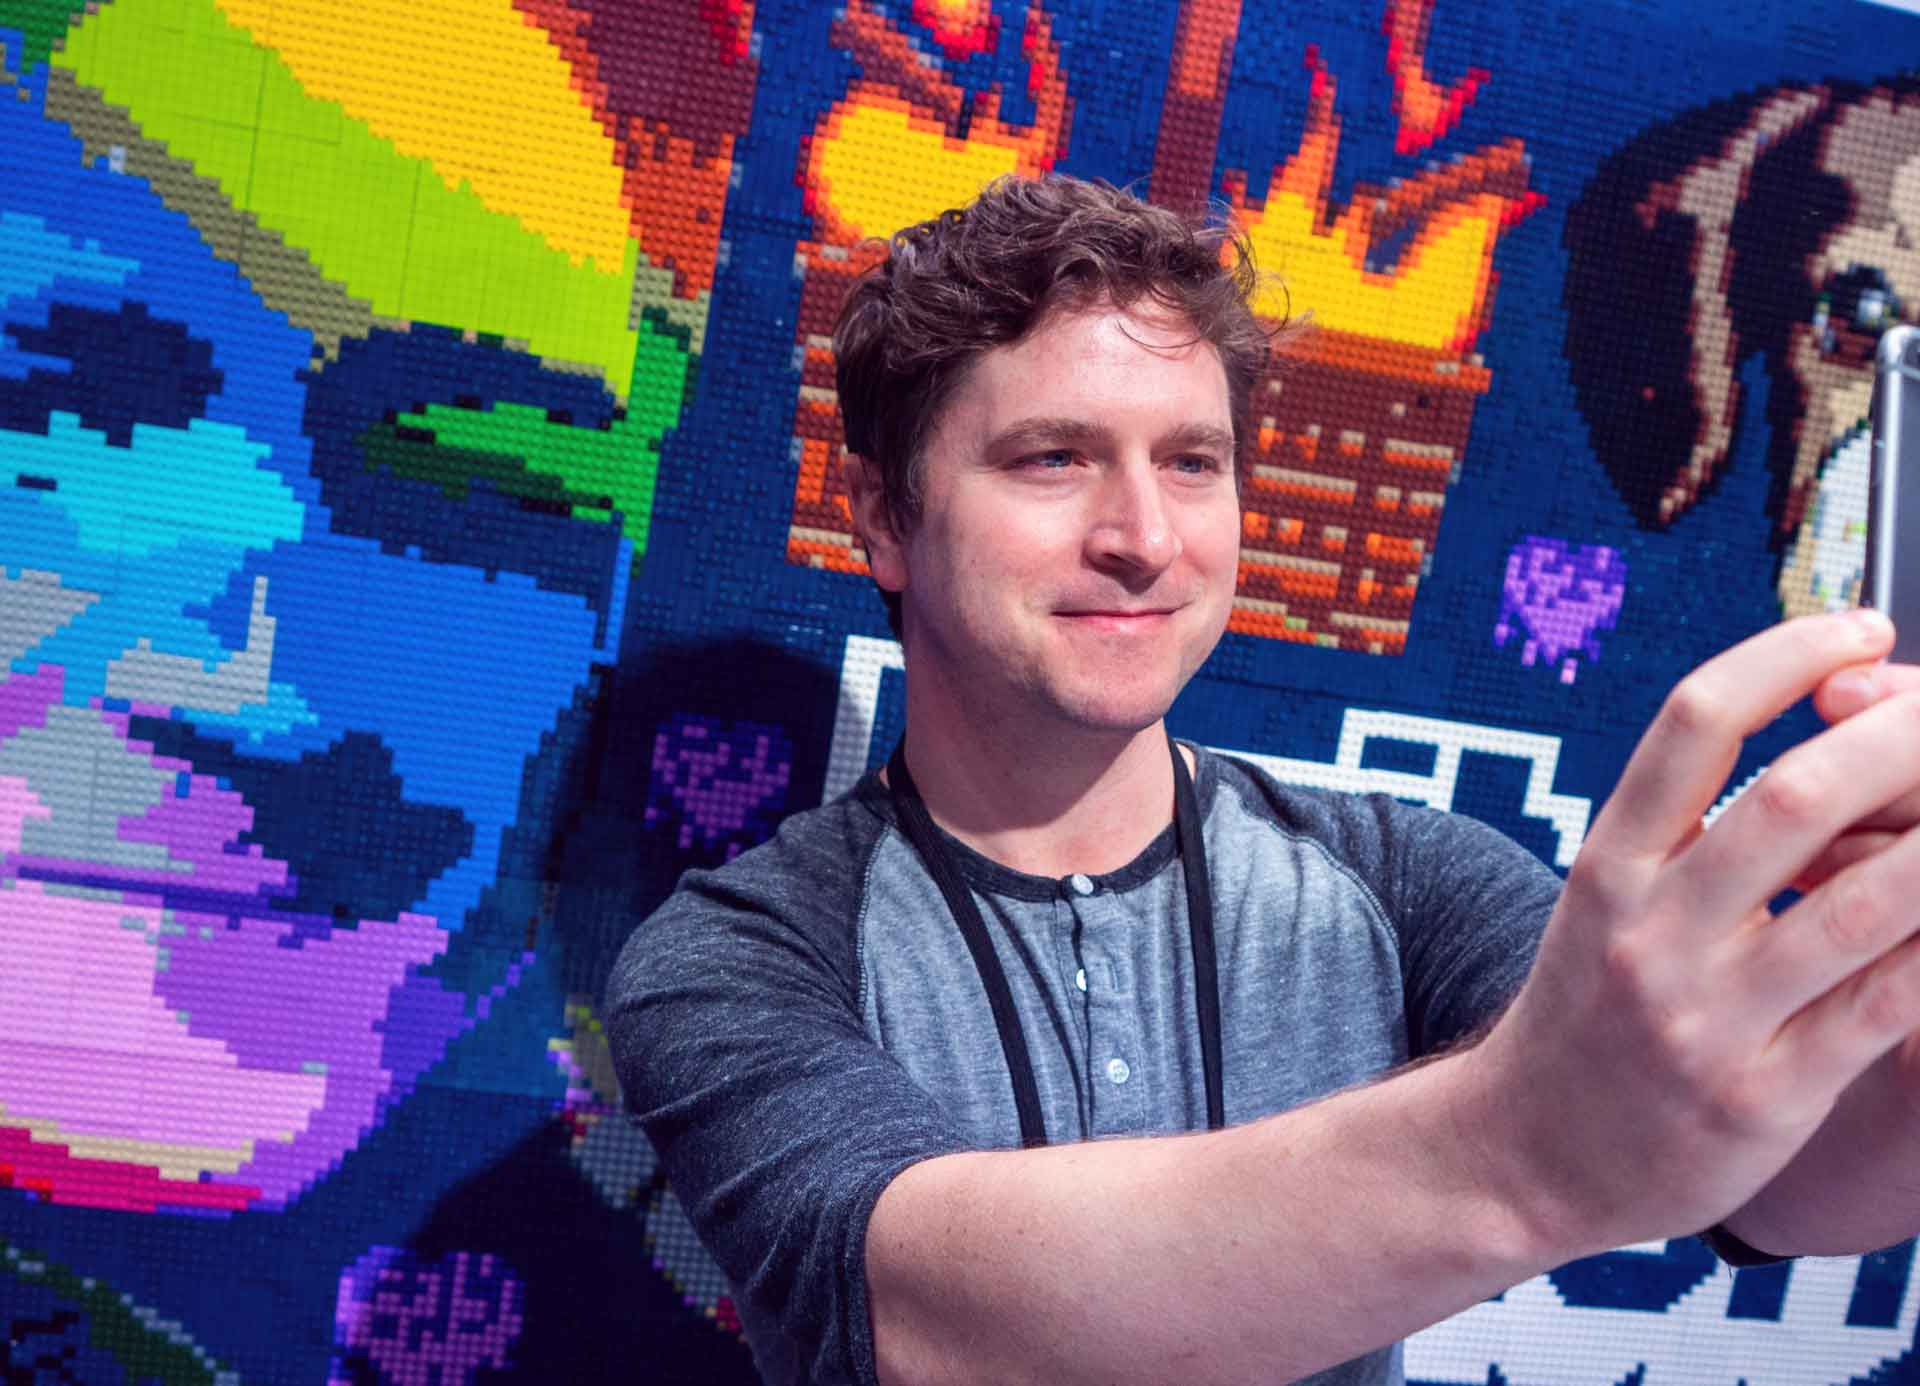 The real life Kappa poses in front of a mural of his popular emote.